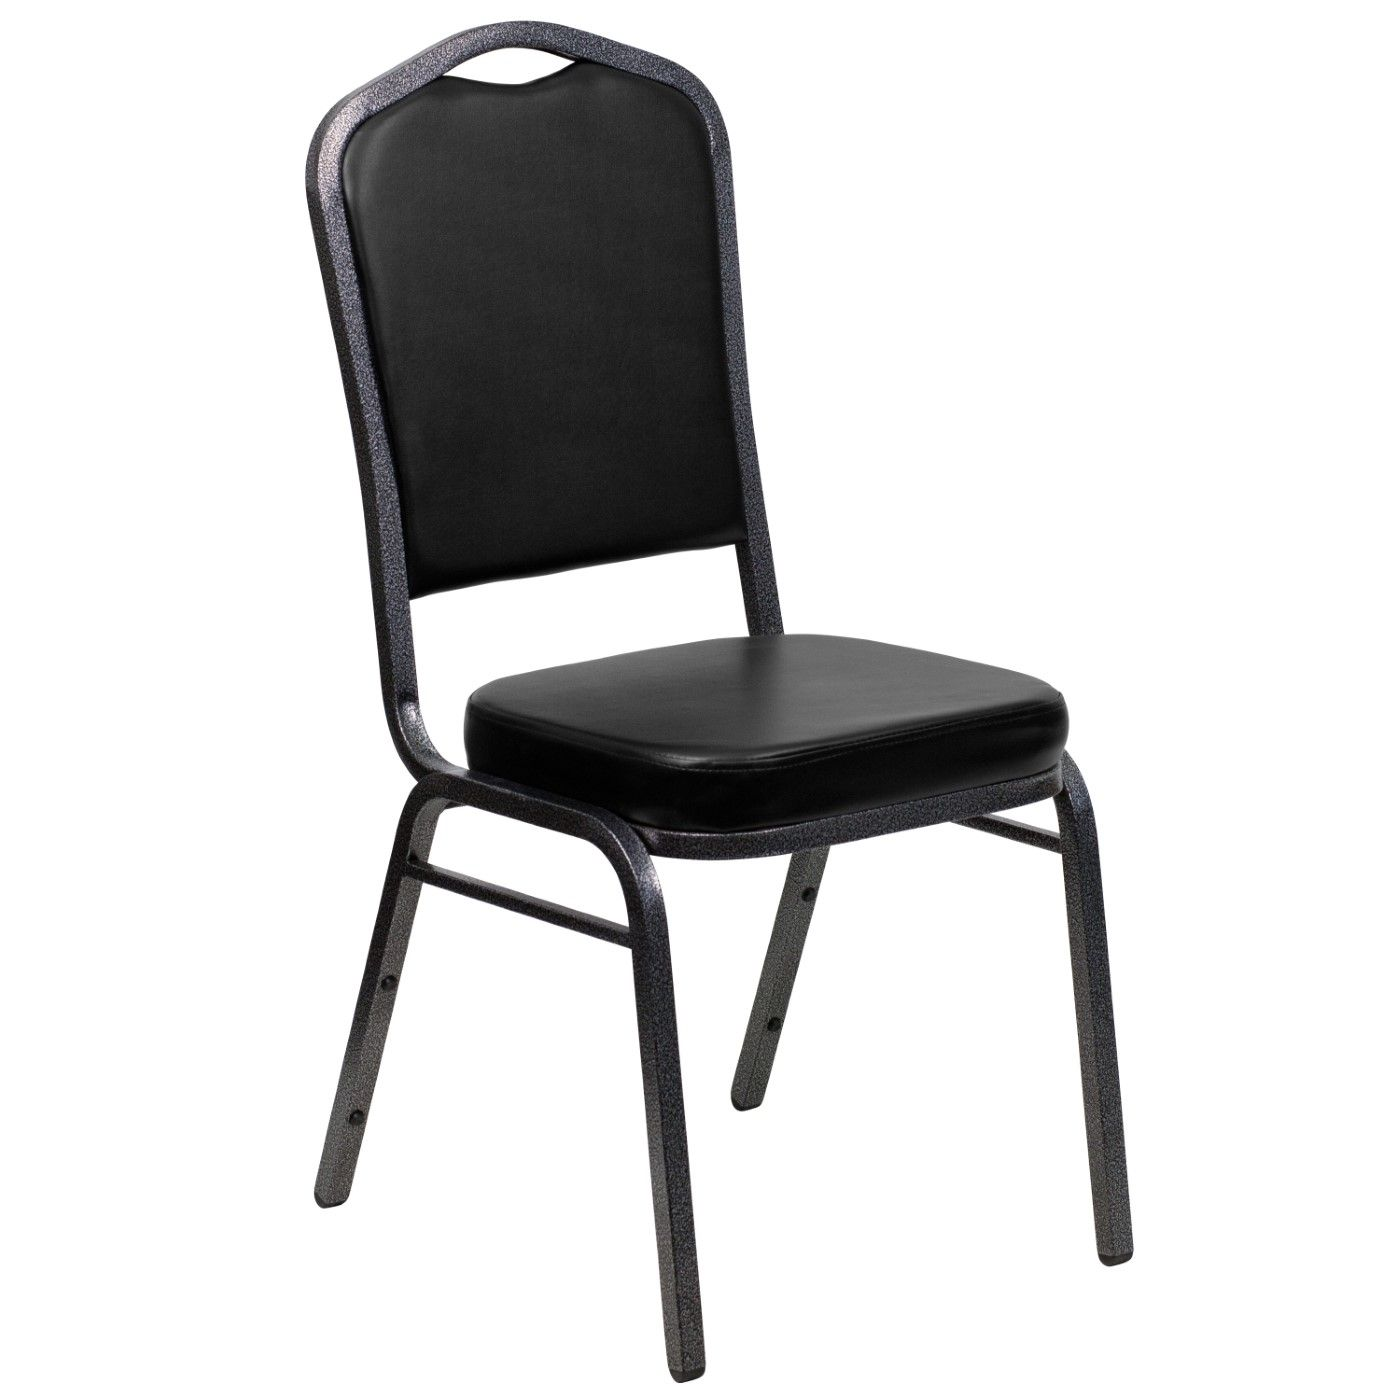 TOUGH ENOUGH Series Crown Back Stacking Banquet Chair in Black Vinyl - Silver Vein Frame